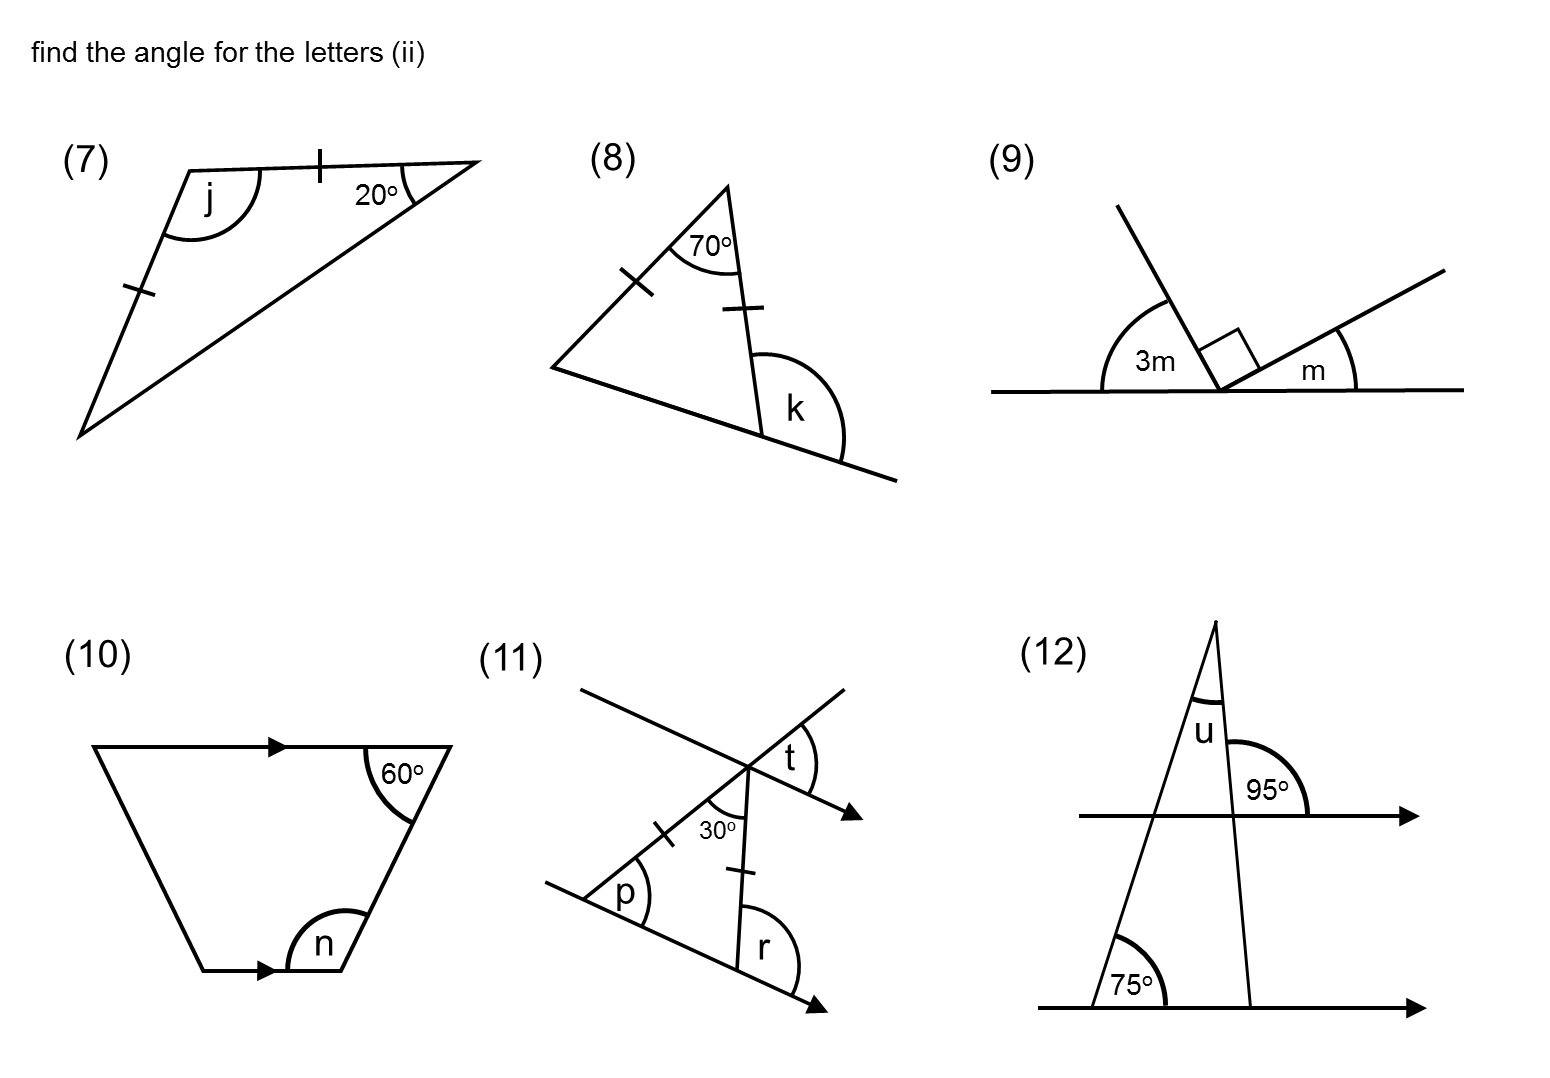 MEDIAN practice and quiz questions: angle questions